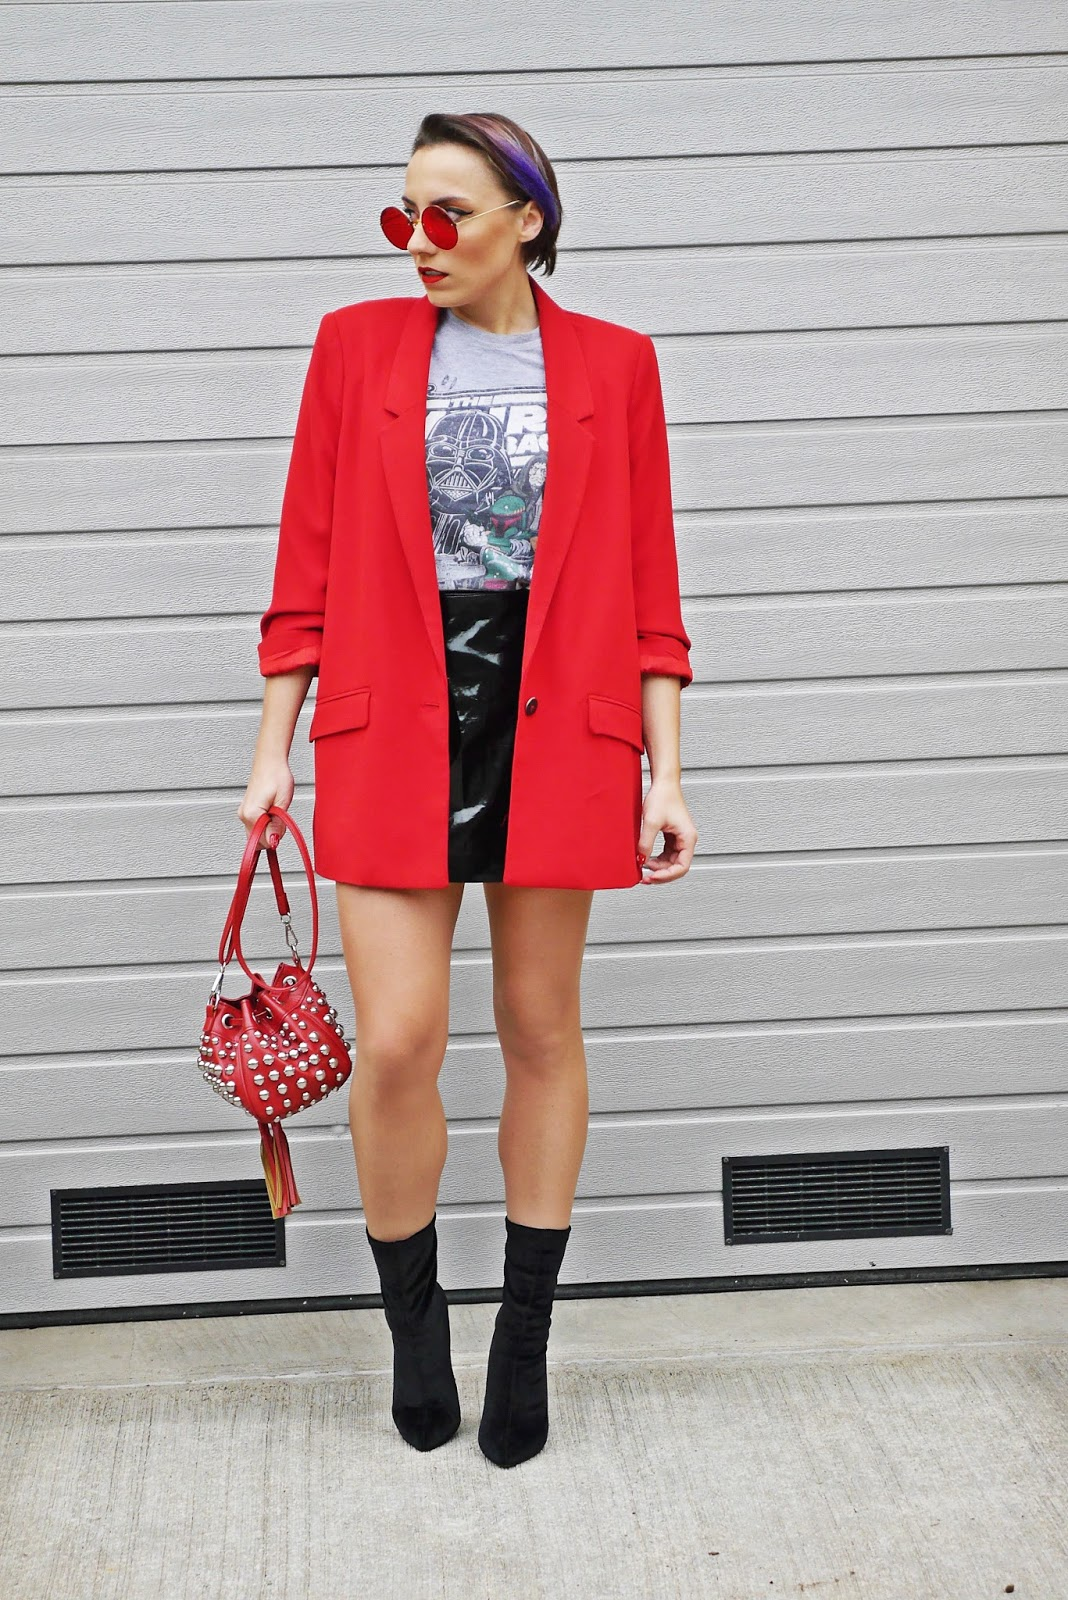 6_red_jacket_star_wars_t-shirt_yeazzy_boots_socks_karyn_blog_modowy_301117